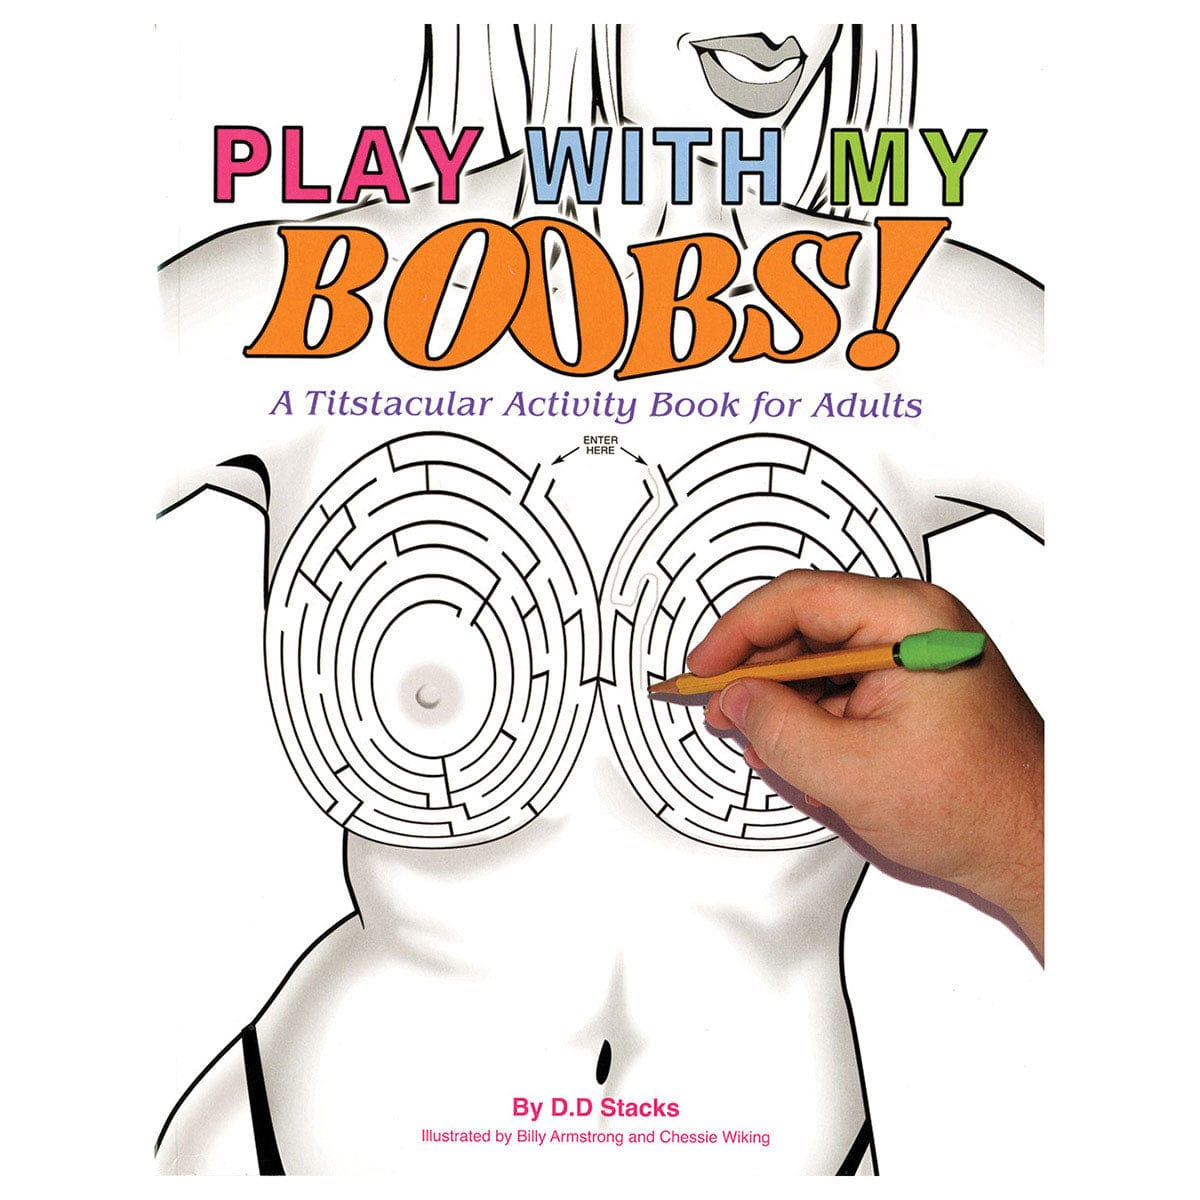 Play with My Boobs! A Titstacular Activity Book for Adults